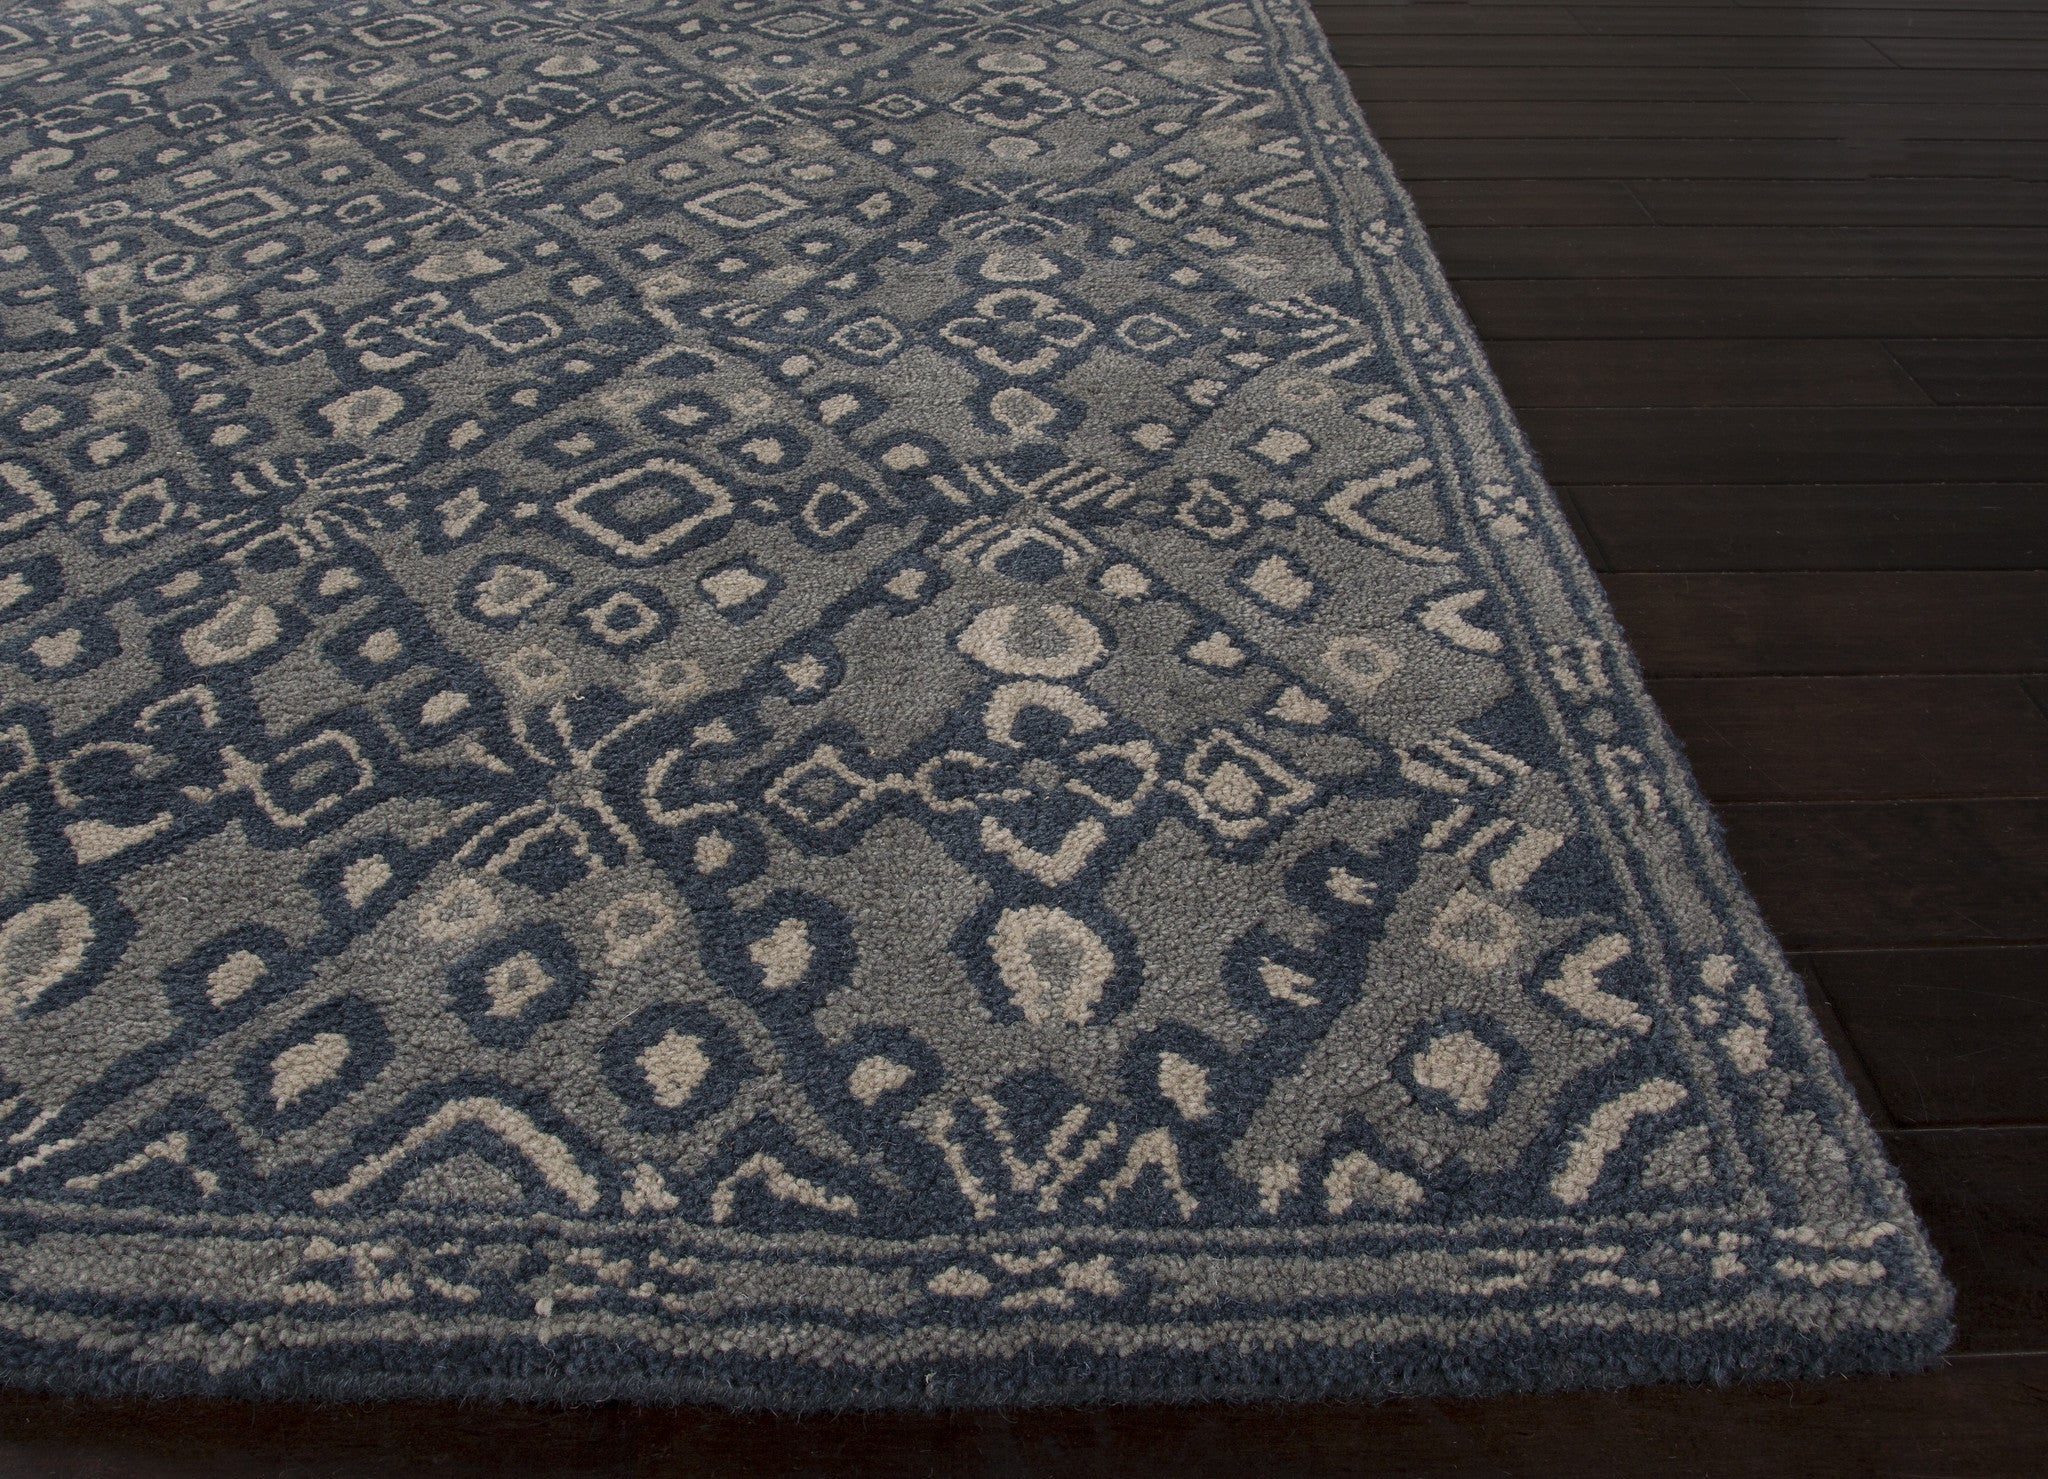 Jaipur rugs modern tribal pattern blue wool area rug mmt08 for Modern wool area rugs